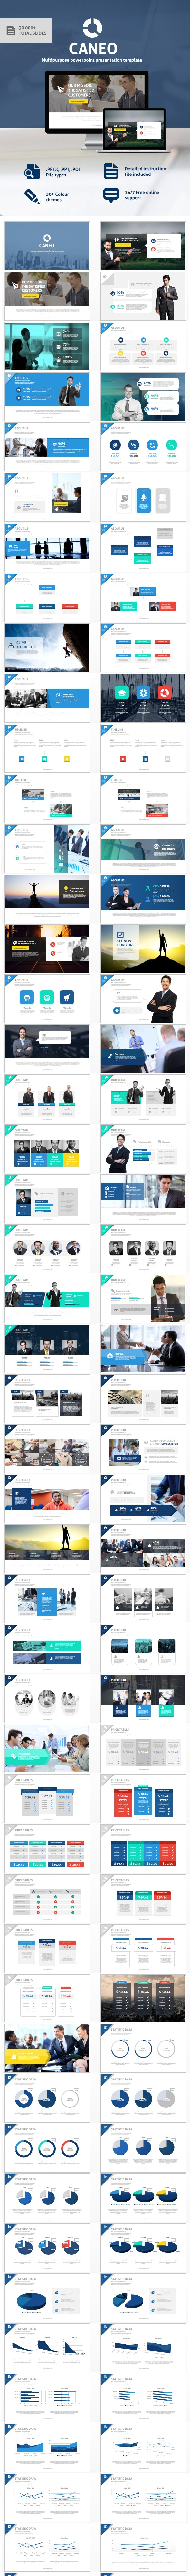 Caneo Powerpoint Presentation Template - Business PowerPoint Templates